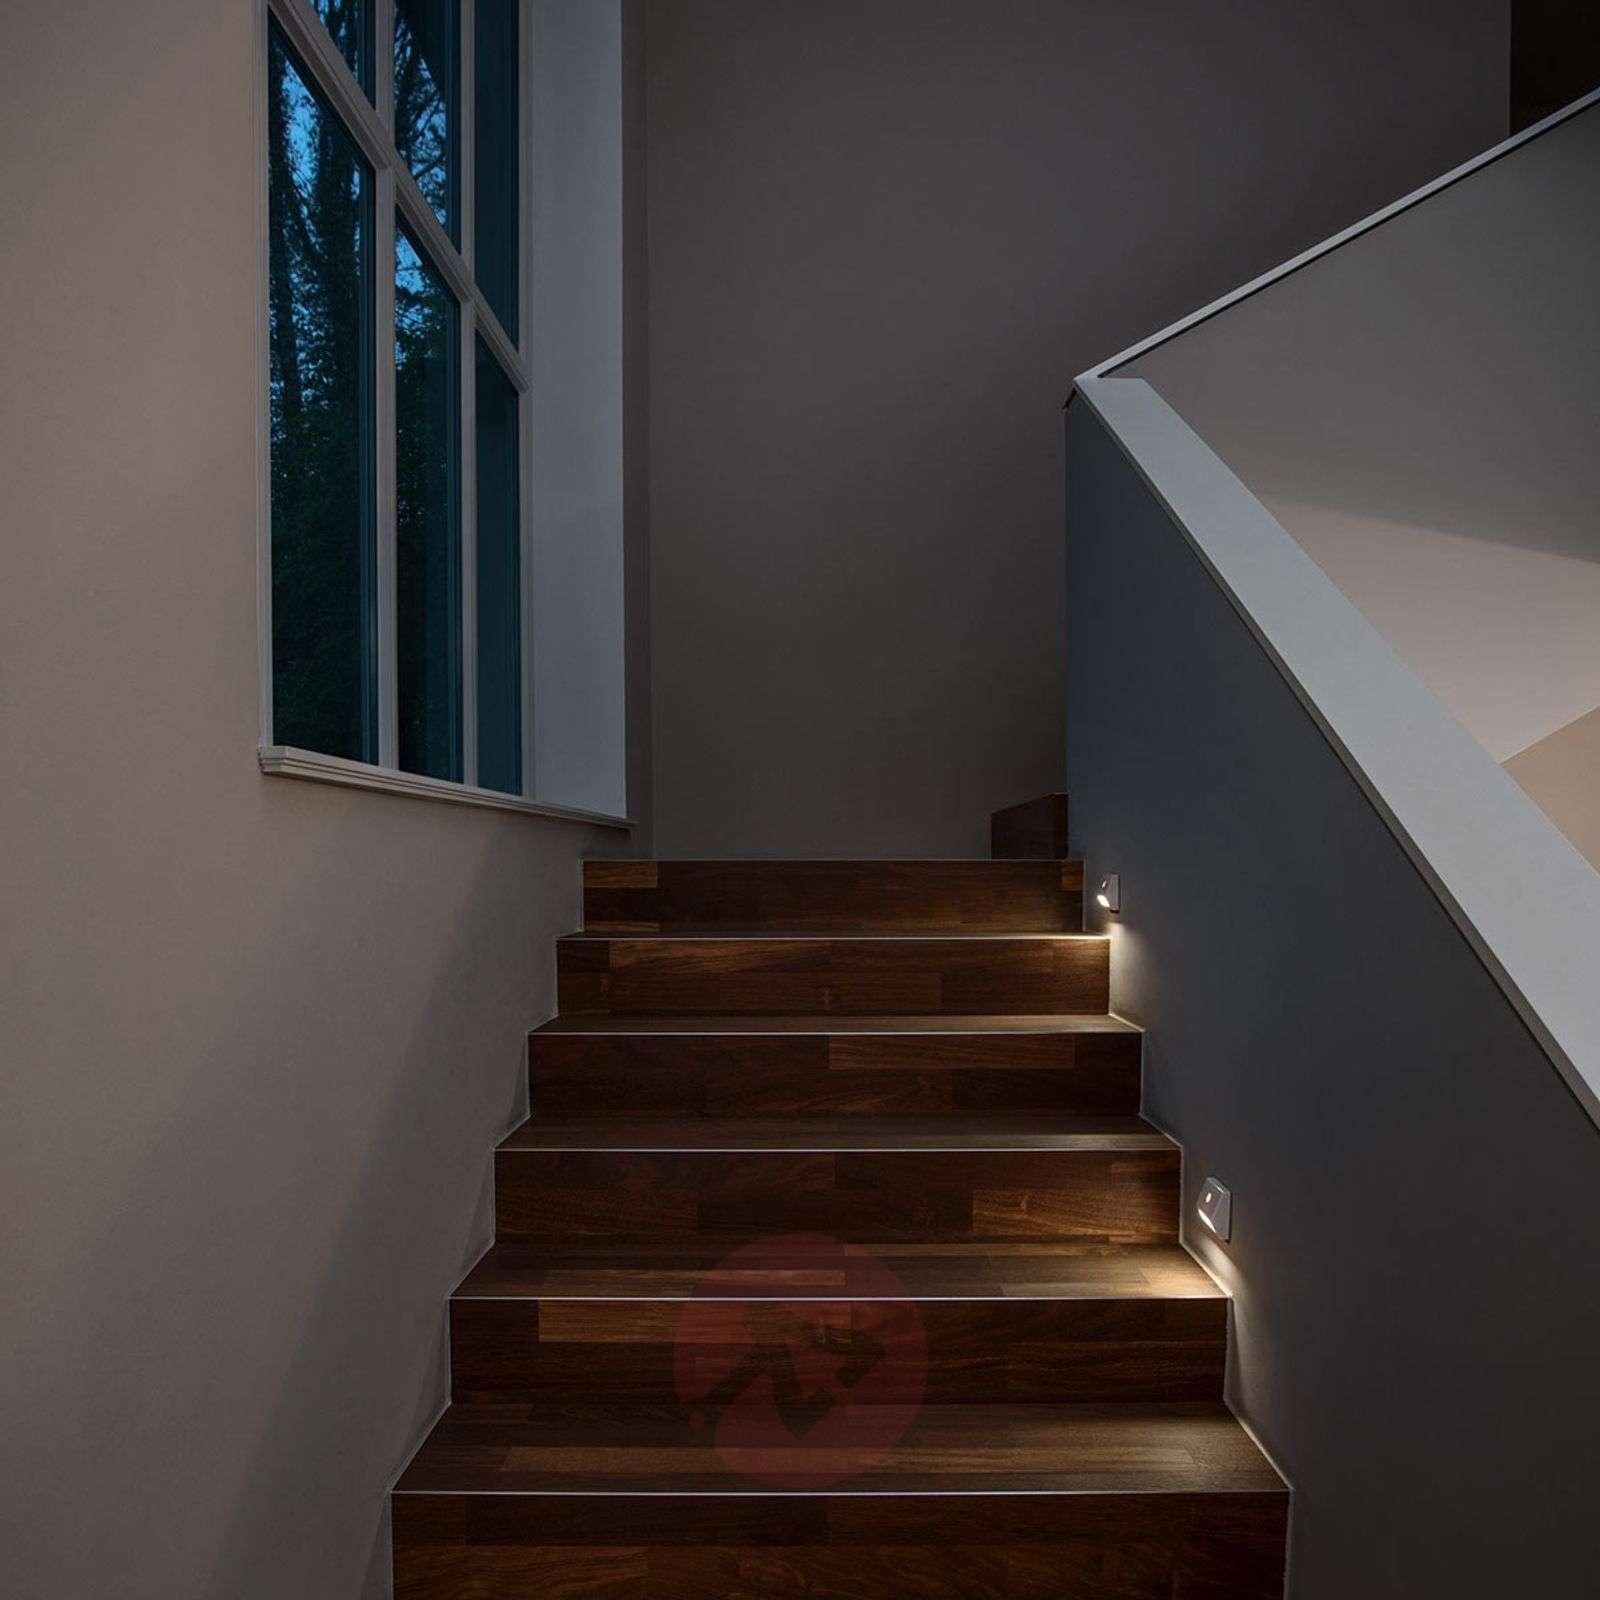 Stair Railing Light: LED Stair Light Nightlux Stair With Sensor